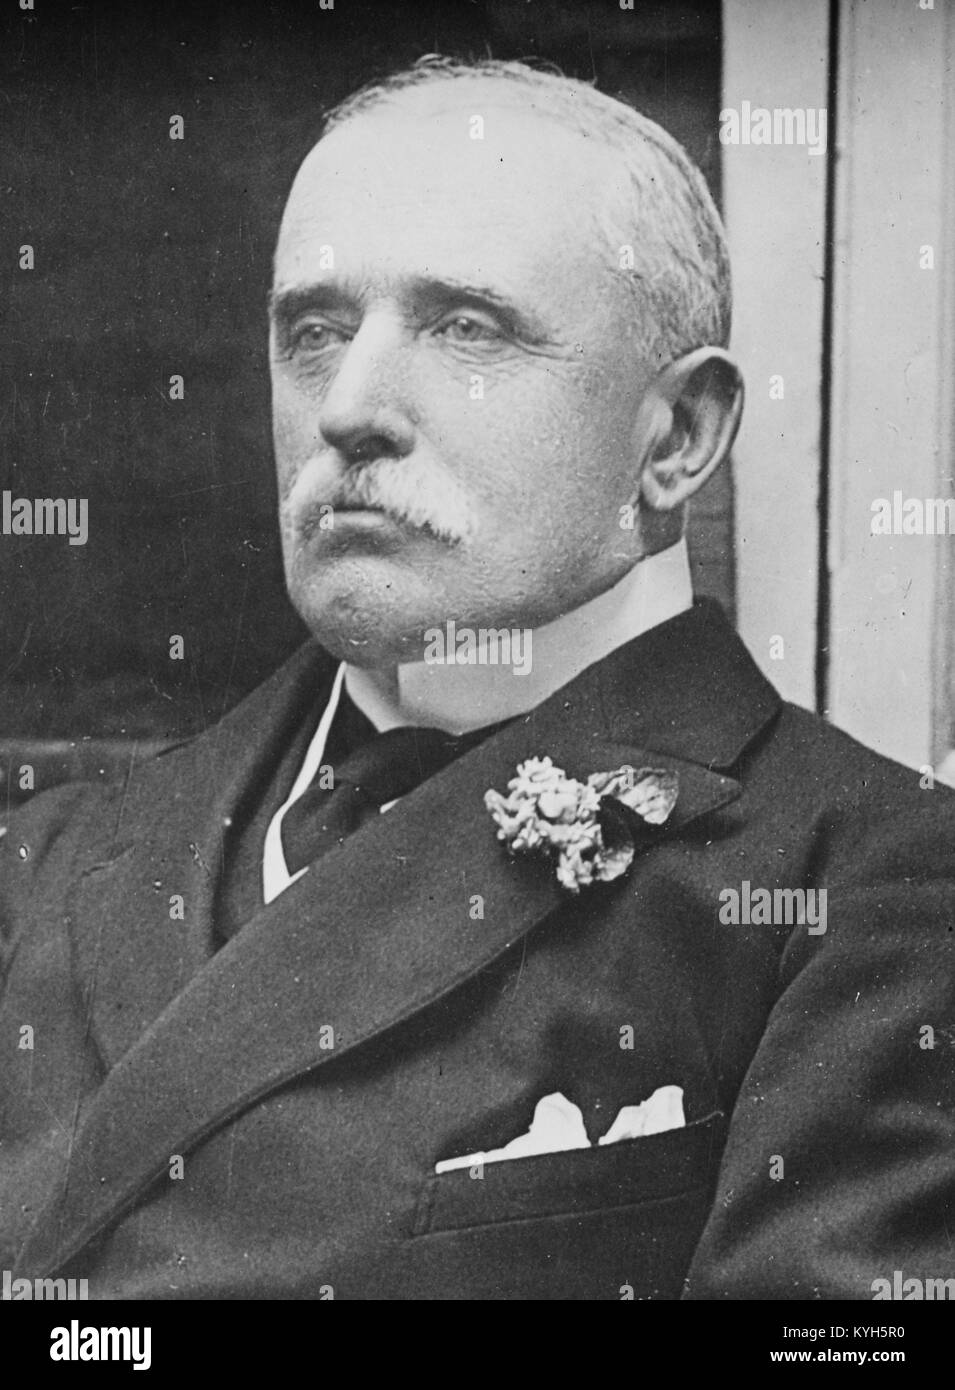 Field Marshal John Denton Pinkstone French, 1st Earl of Ypres, senior British Army officer. - Stock Image